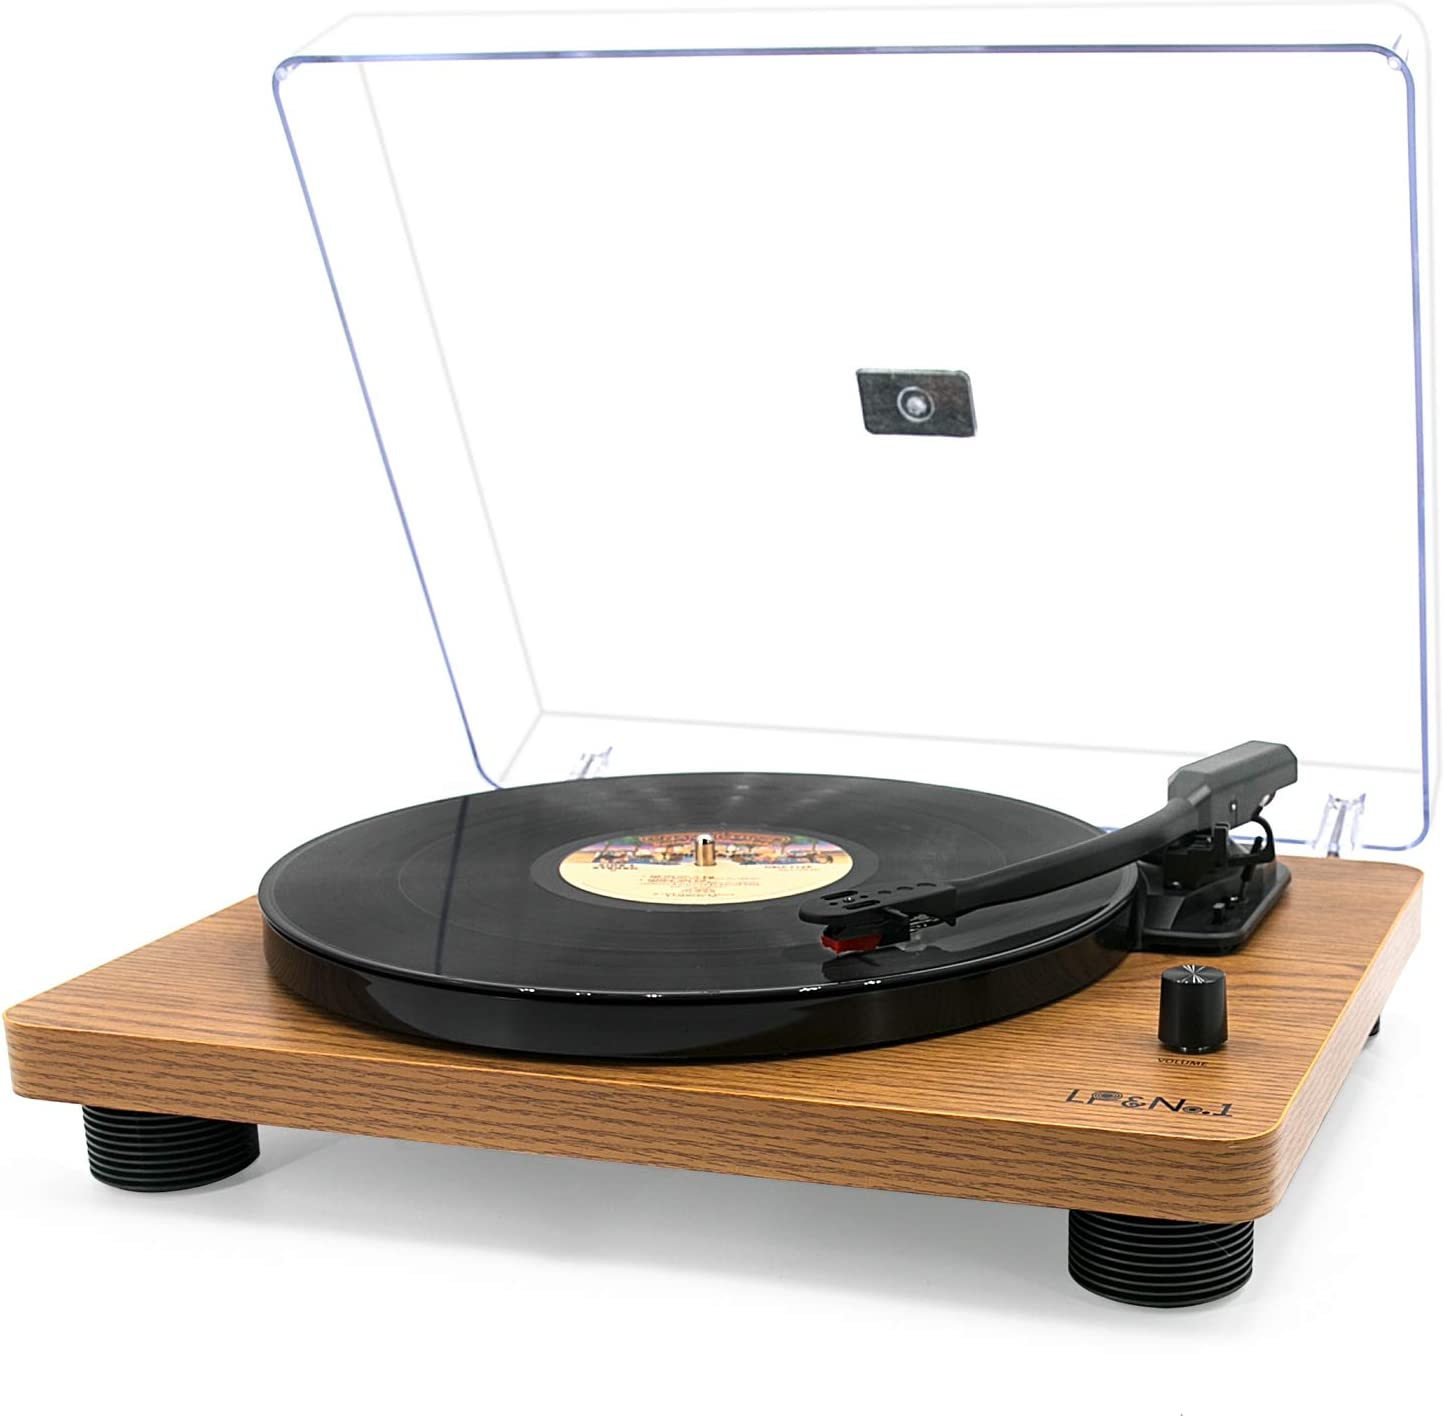 LP&No.1 Retro Record Player Supporting Vinyl to MP3 Recording, 3-Speed Belt Drive Turntable with Built-in Stereo Speakers and RCA Output, Yellow Wood Finish